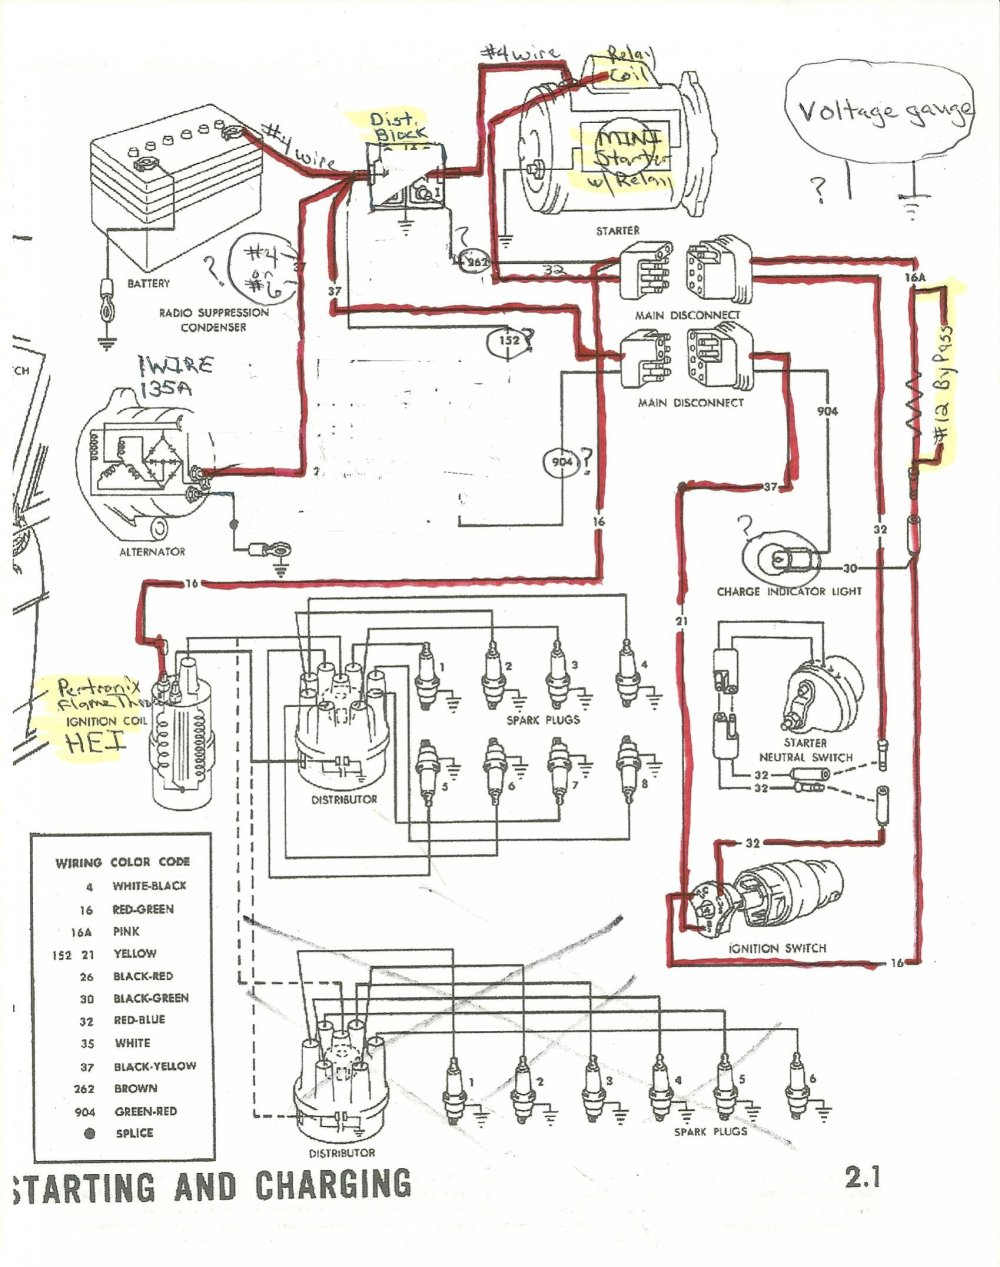 medium resolution of 1965 ford alternator wiring wiring diagram fascinating1965 ford alternator wiring wiring diagram 1965 ford thunderbird alternator